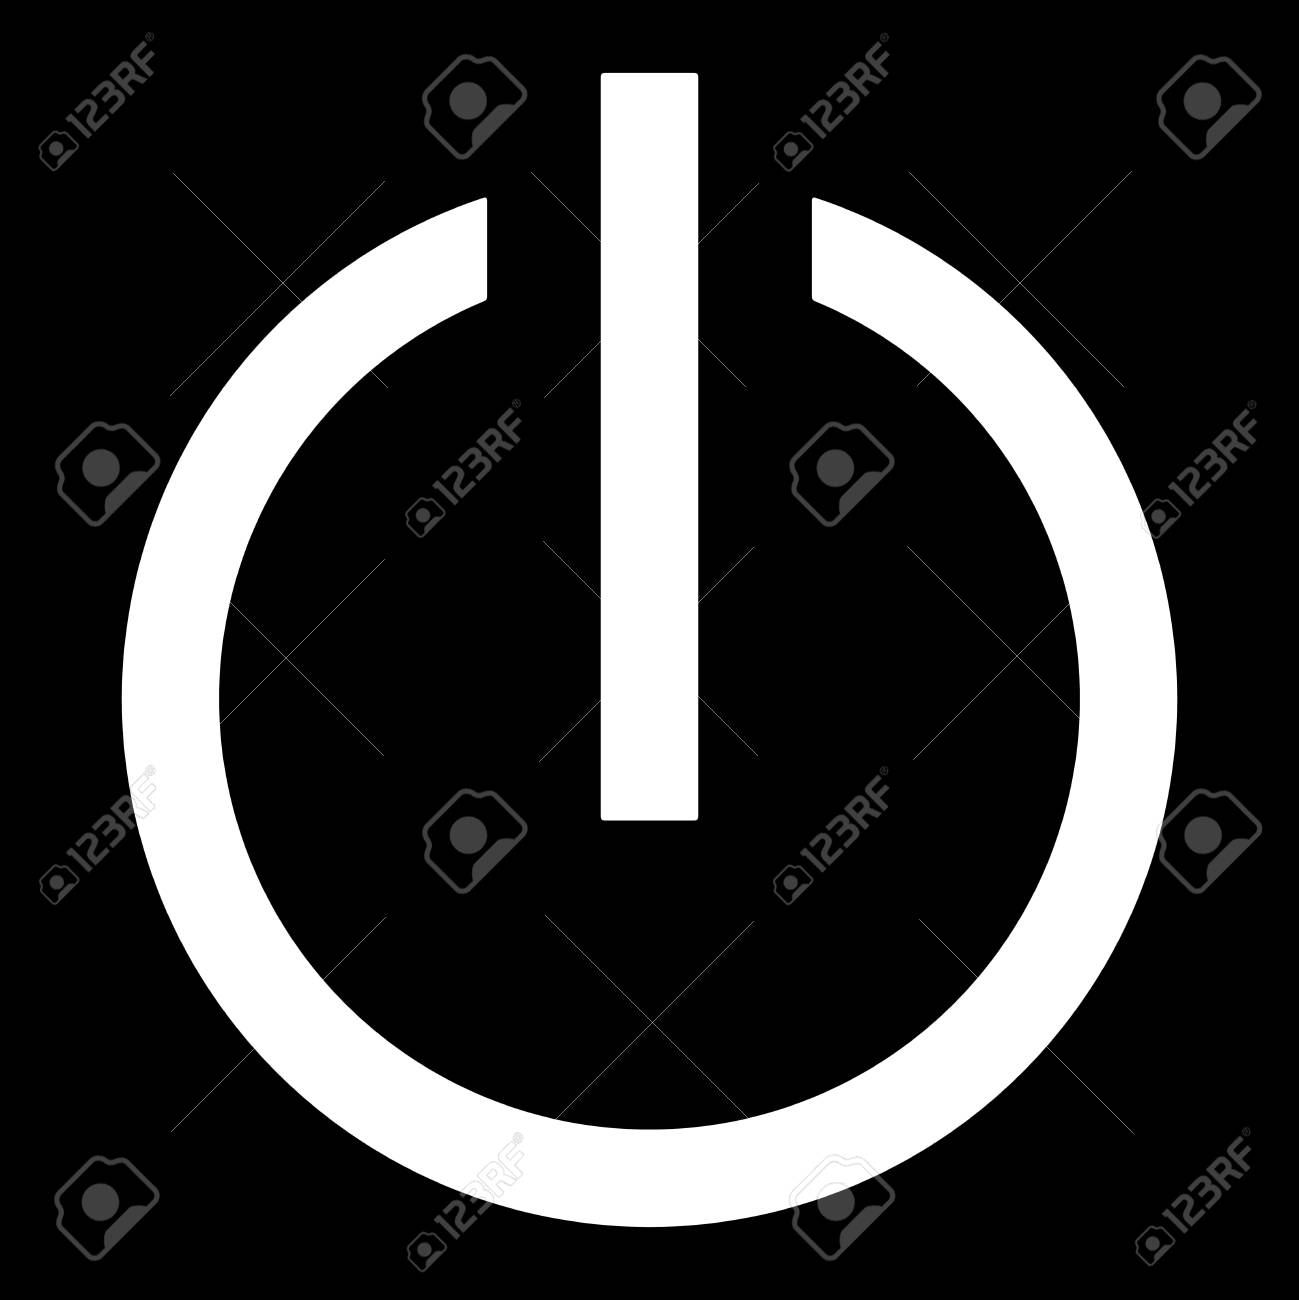 Symbol Of An On-off Switch Of Electrical Equipment. Stock Photo ...